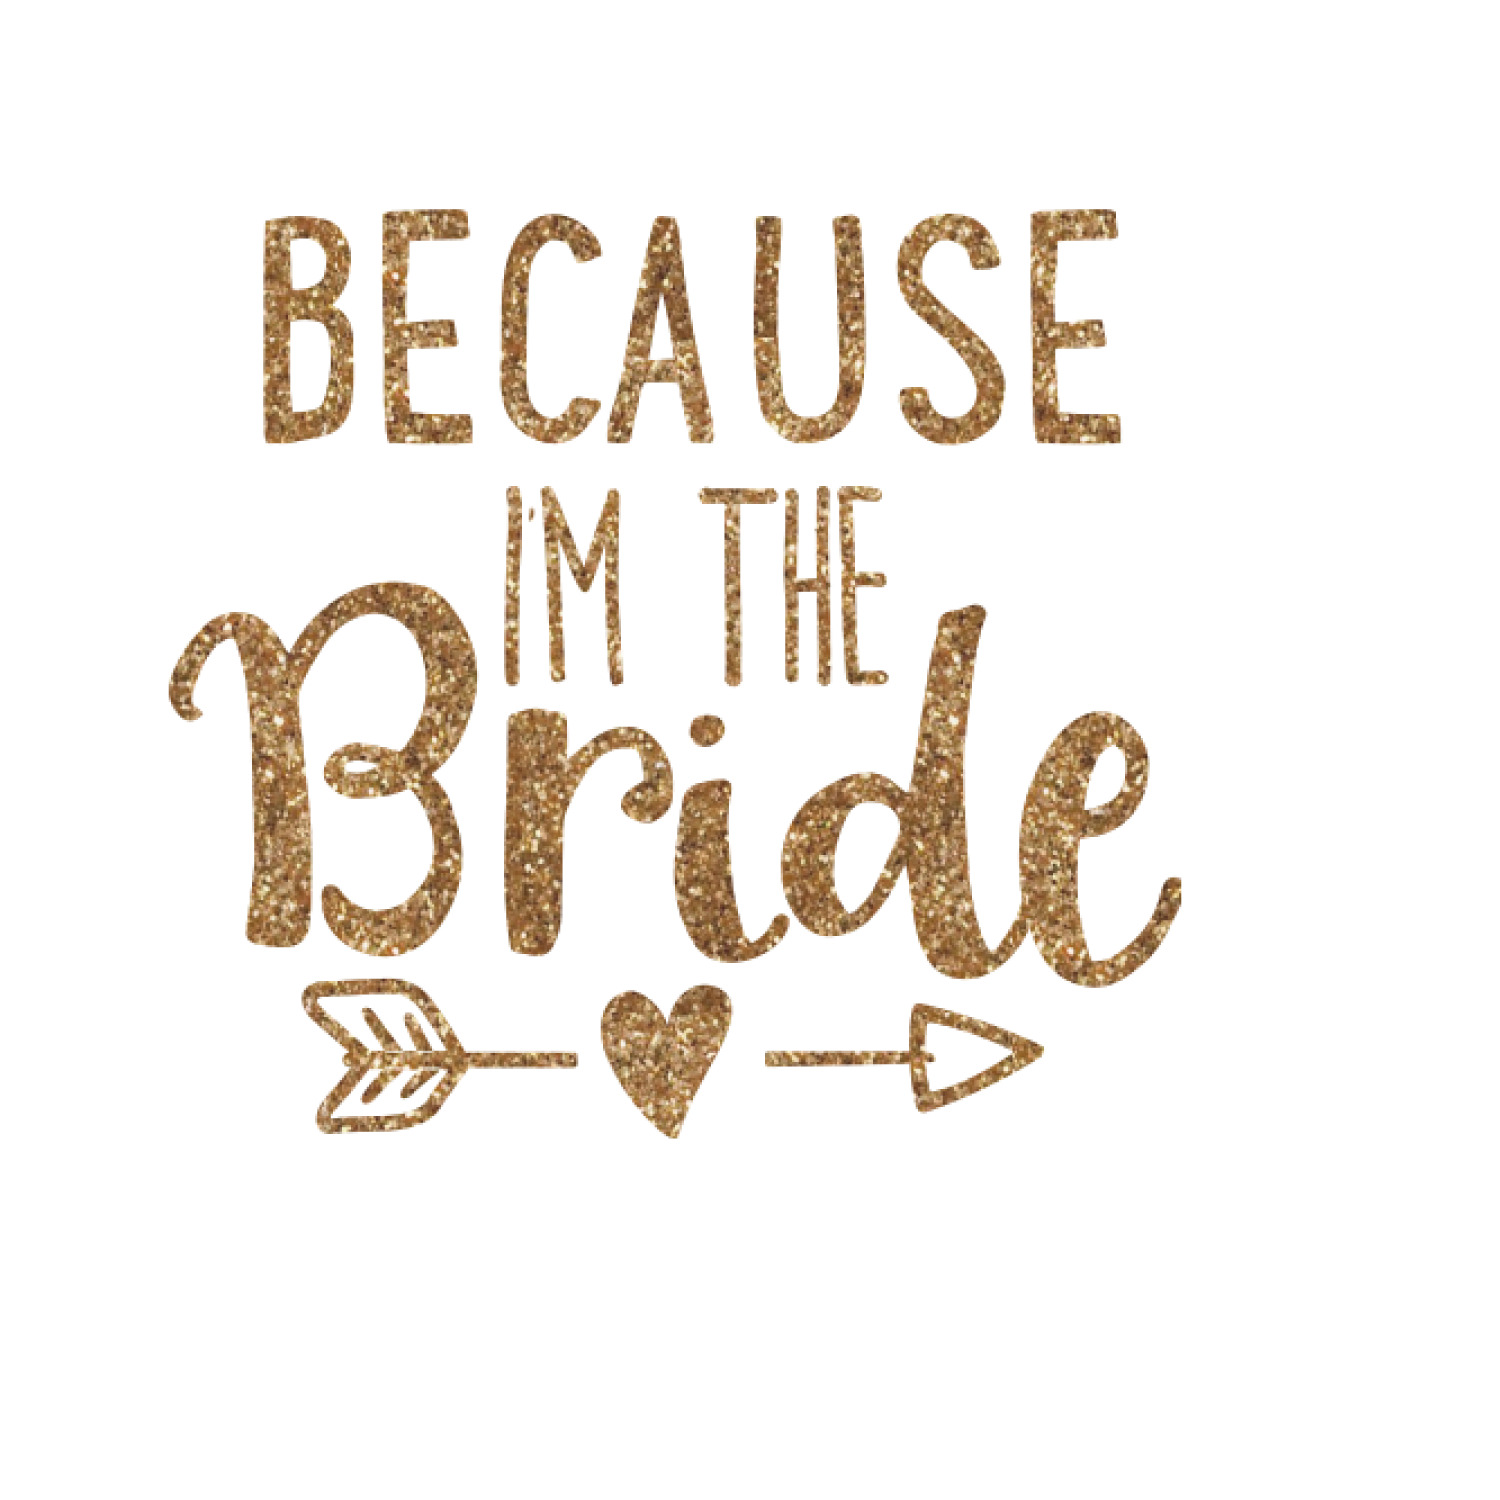 Bride Wedding Quotes And Sayings Glitter Iron On Transfer Up To